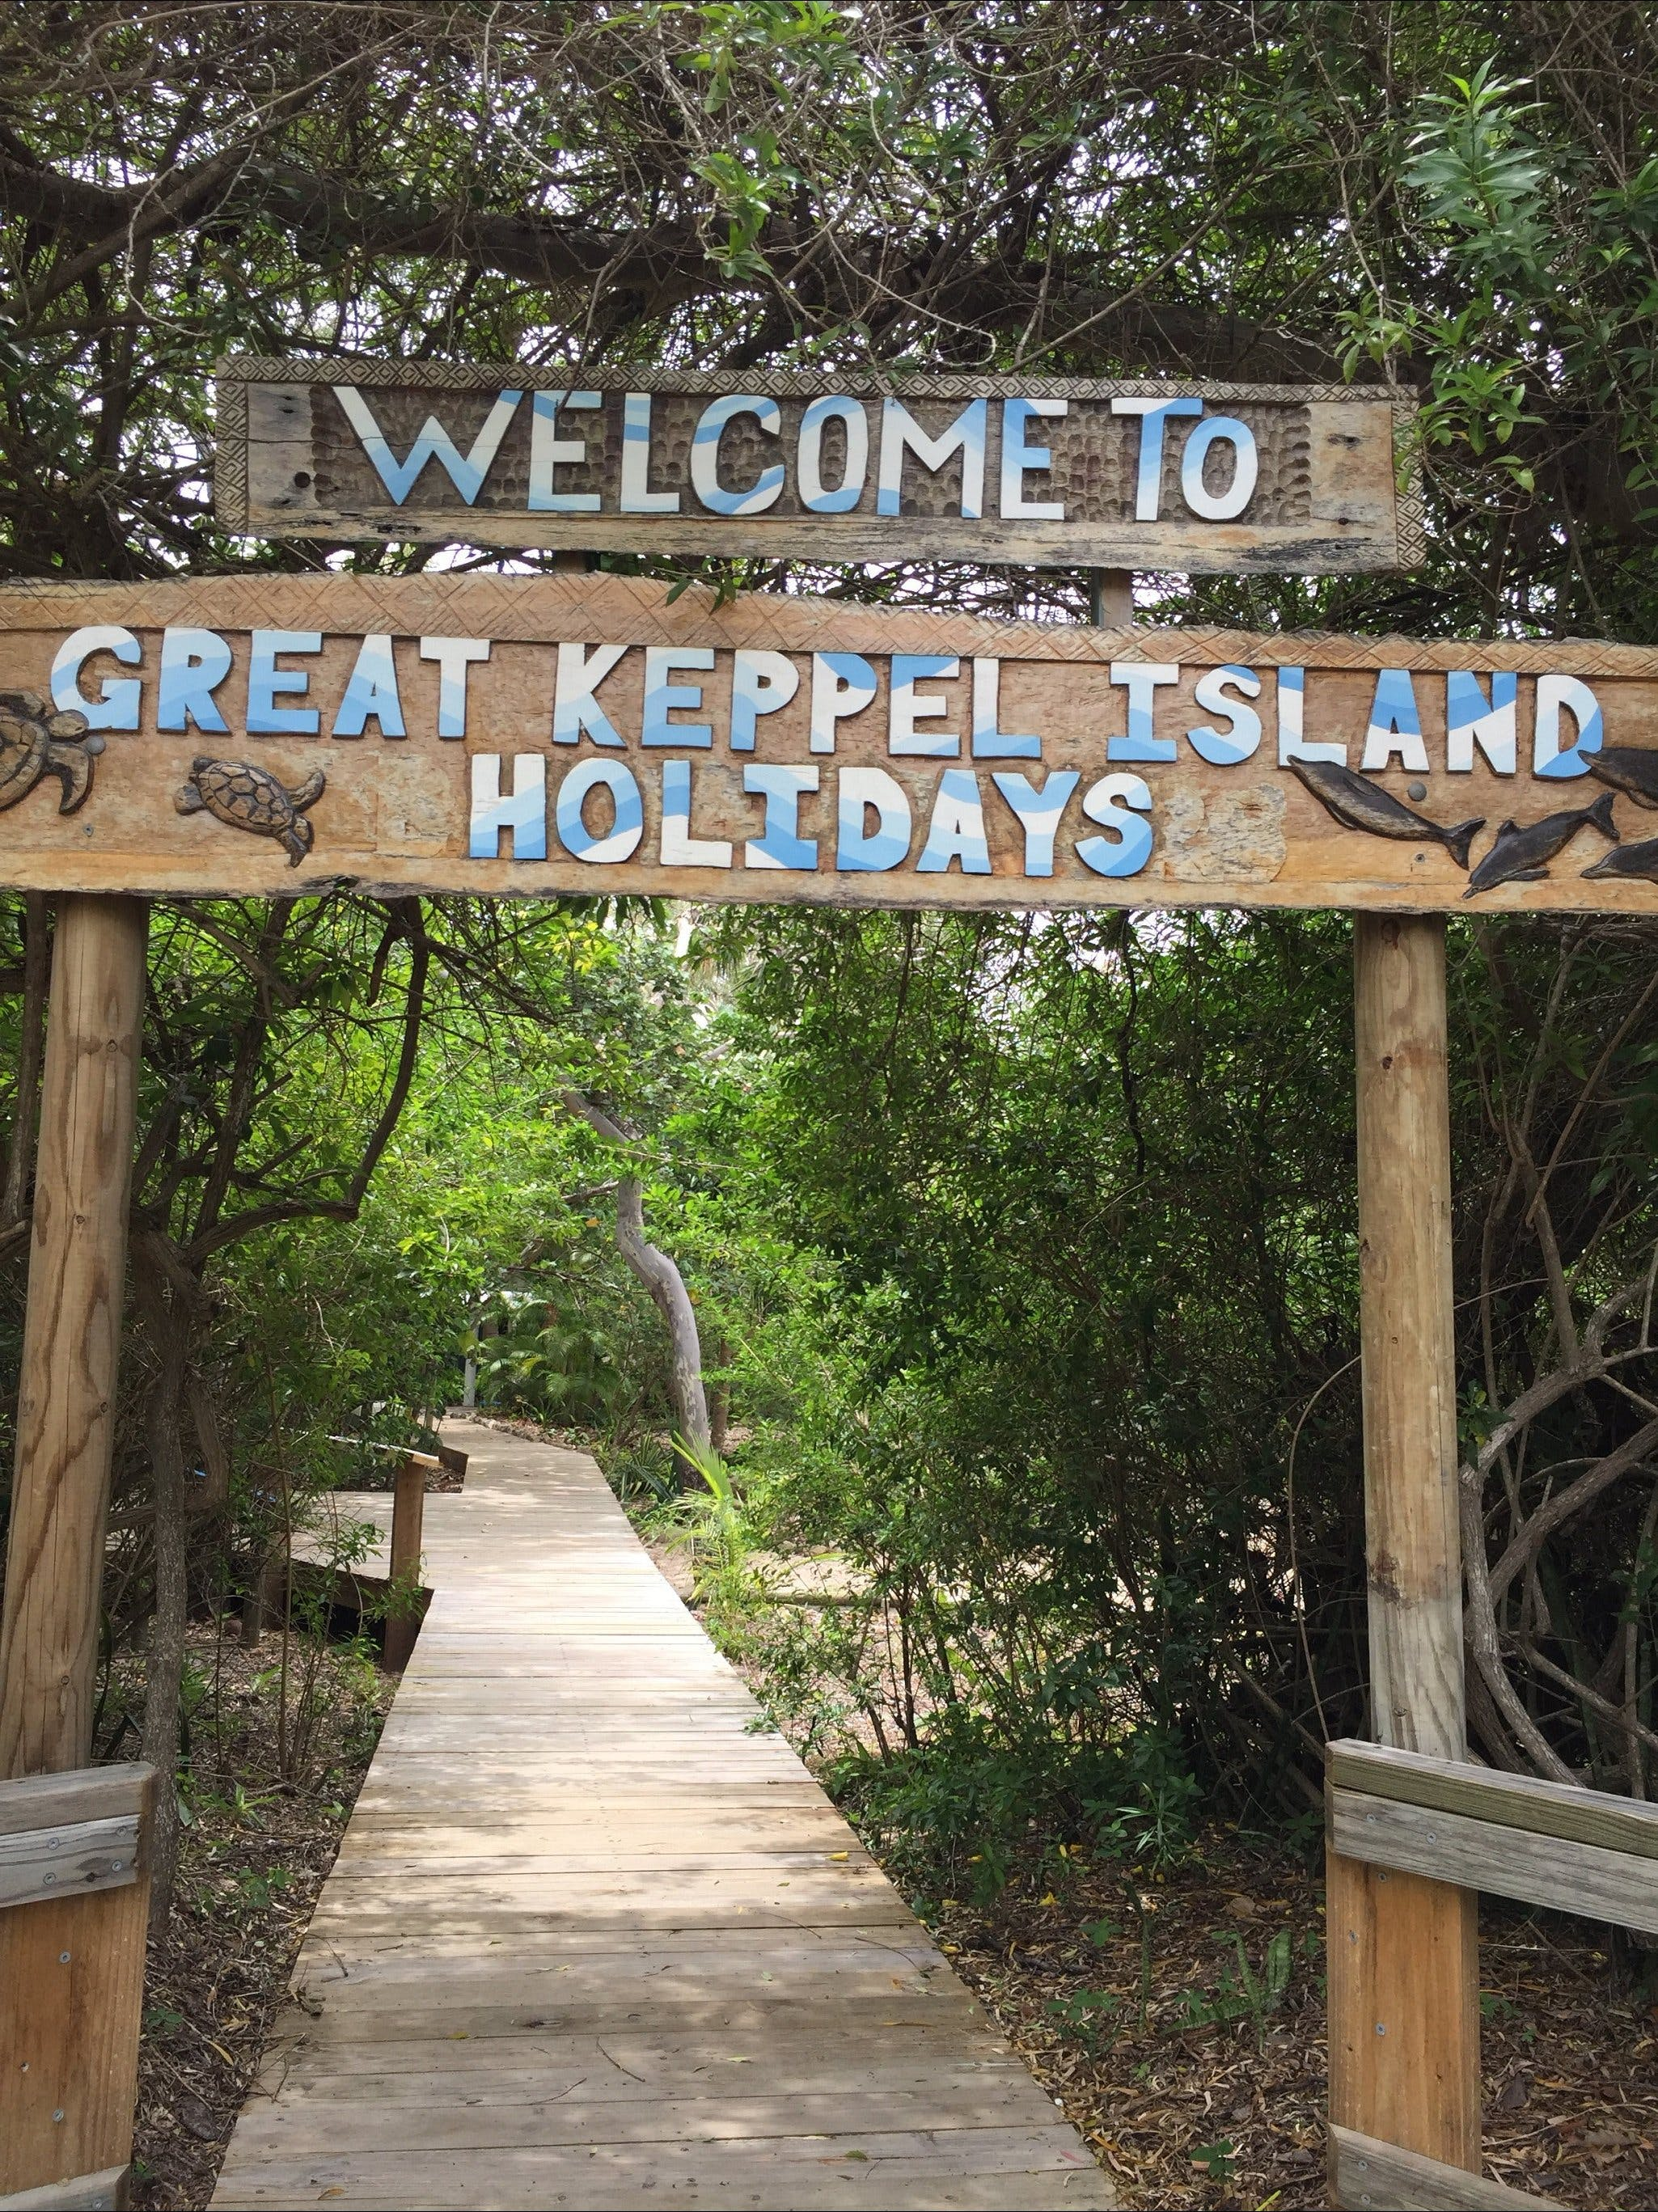 Great Keppel Island Holiday Village - Accommodation Ballina